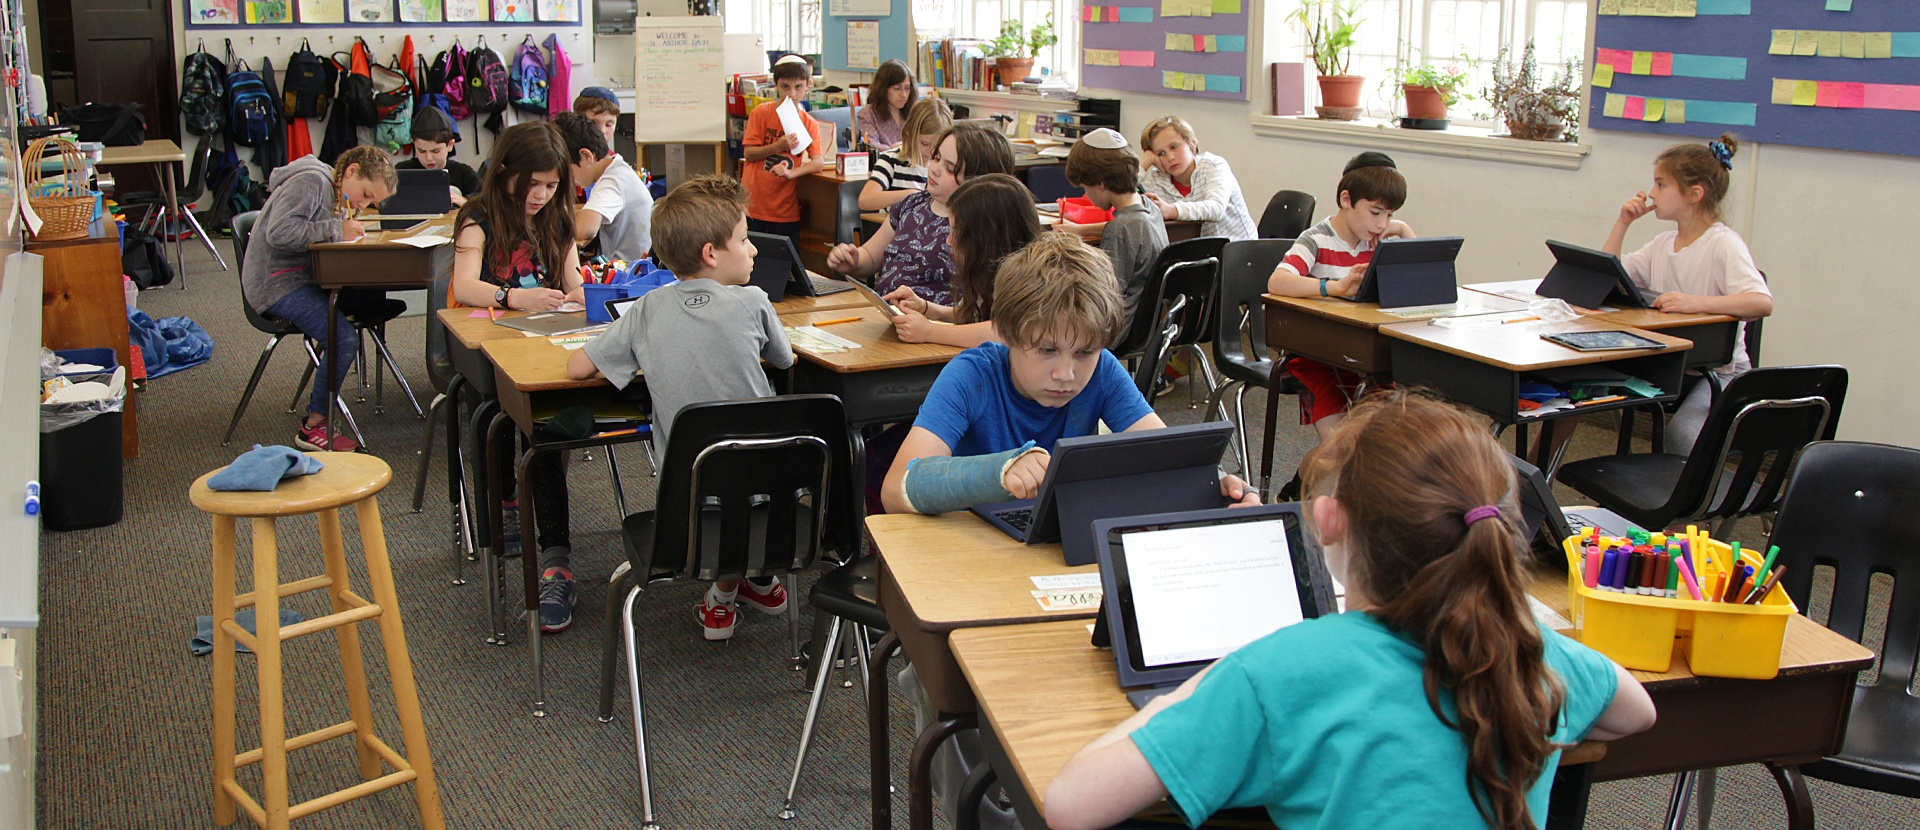 Perelman classroom filled with students each using iPad tablets